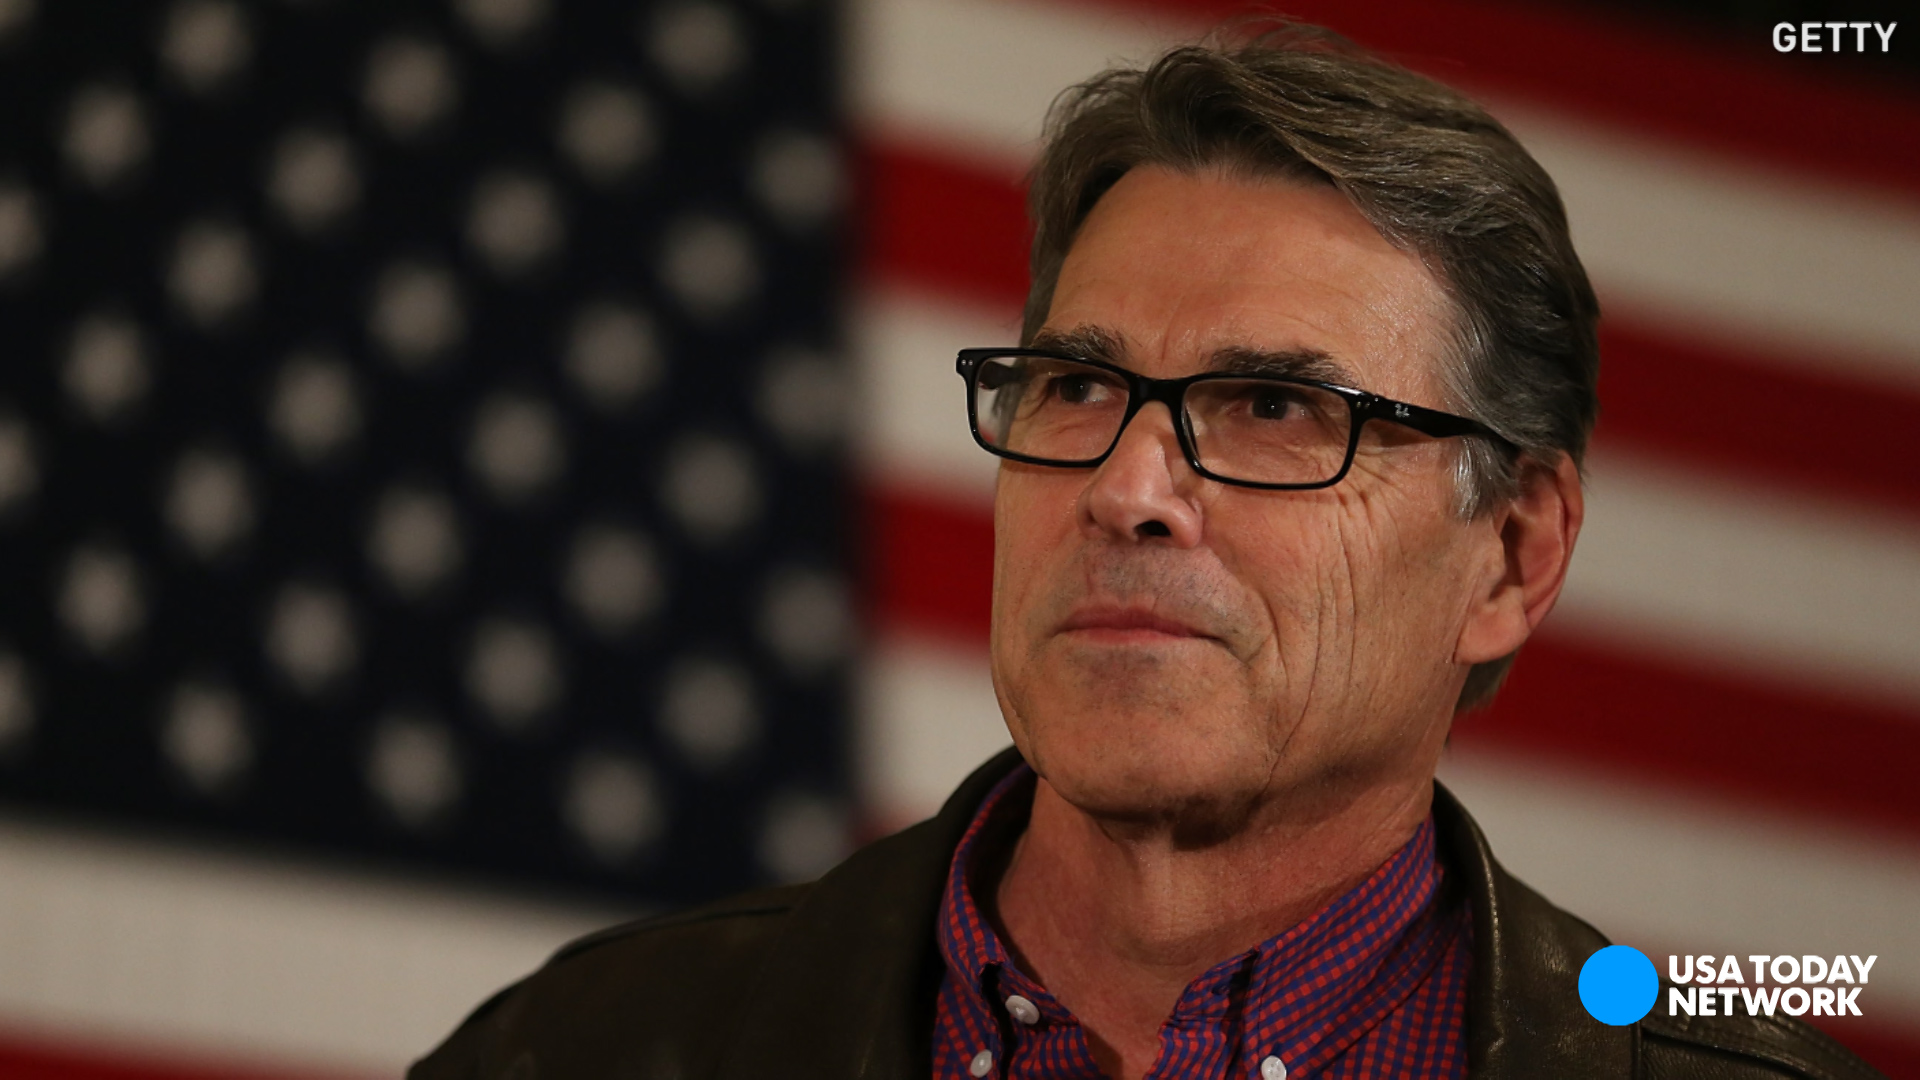 Trump taps Rick Perry for Energy secretary